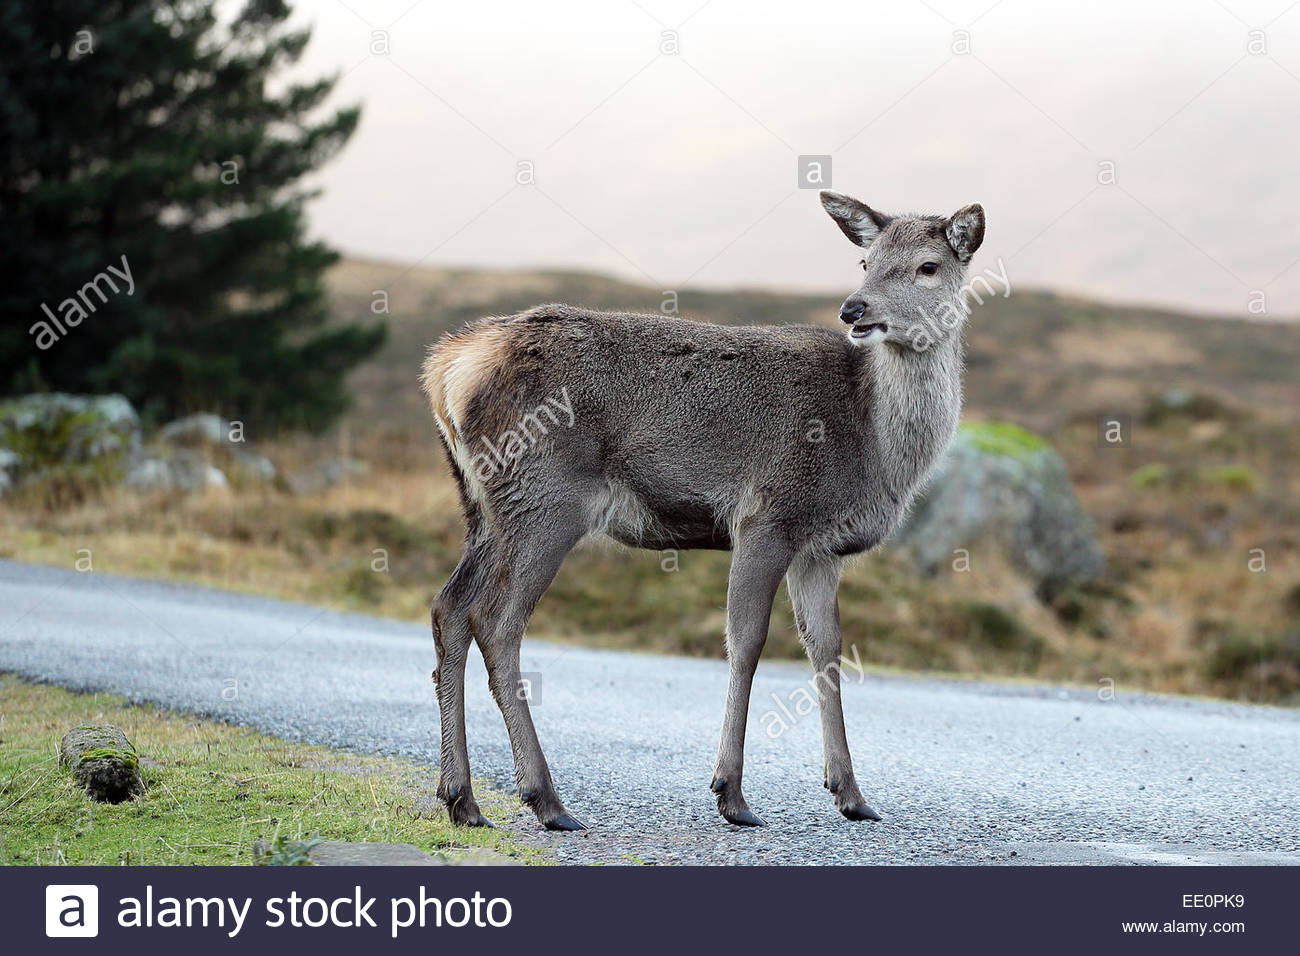 A young Red Deer in the Scottish highlands - Stock Image